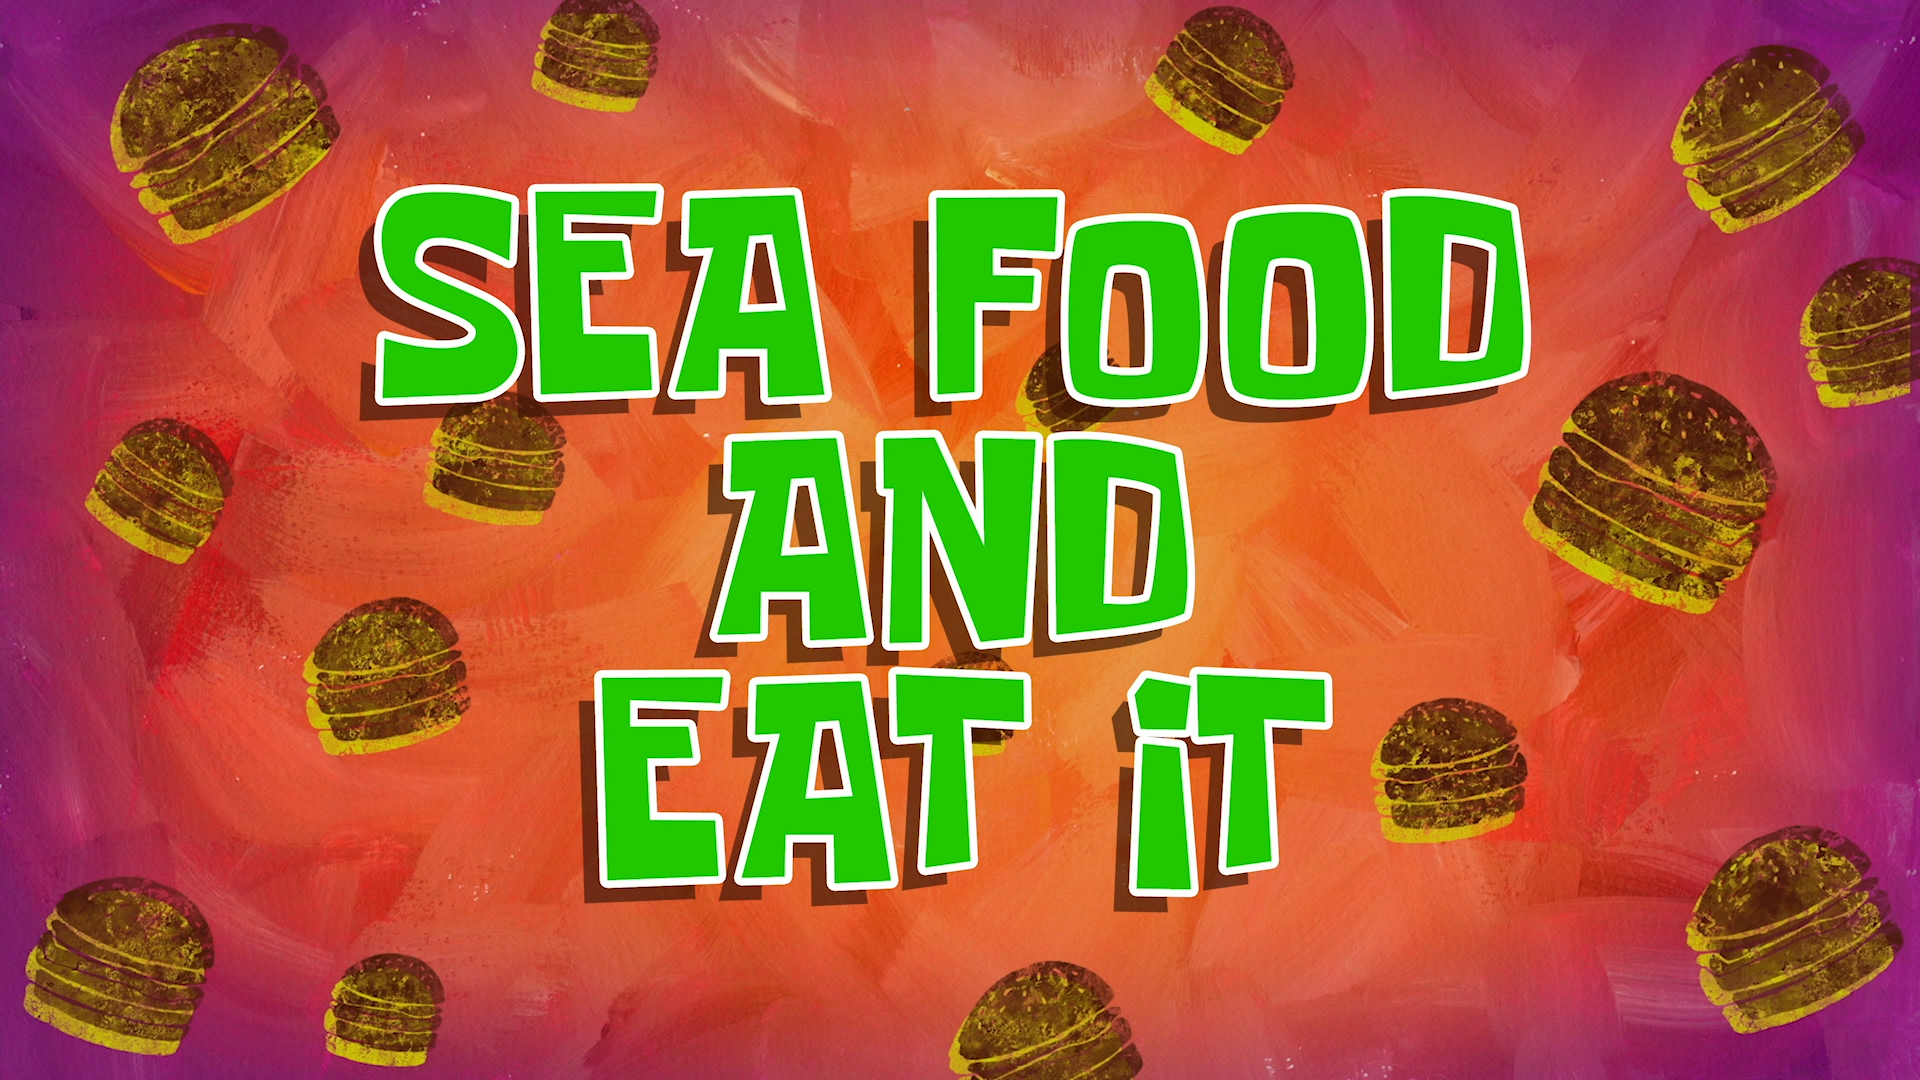 Sea Food and Eat It